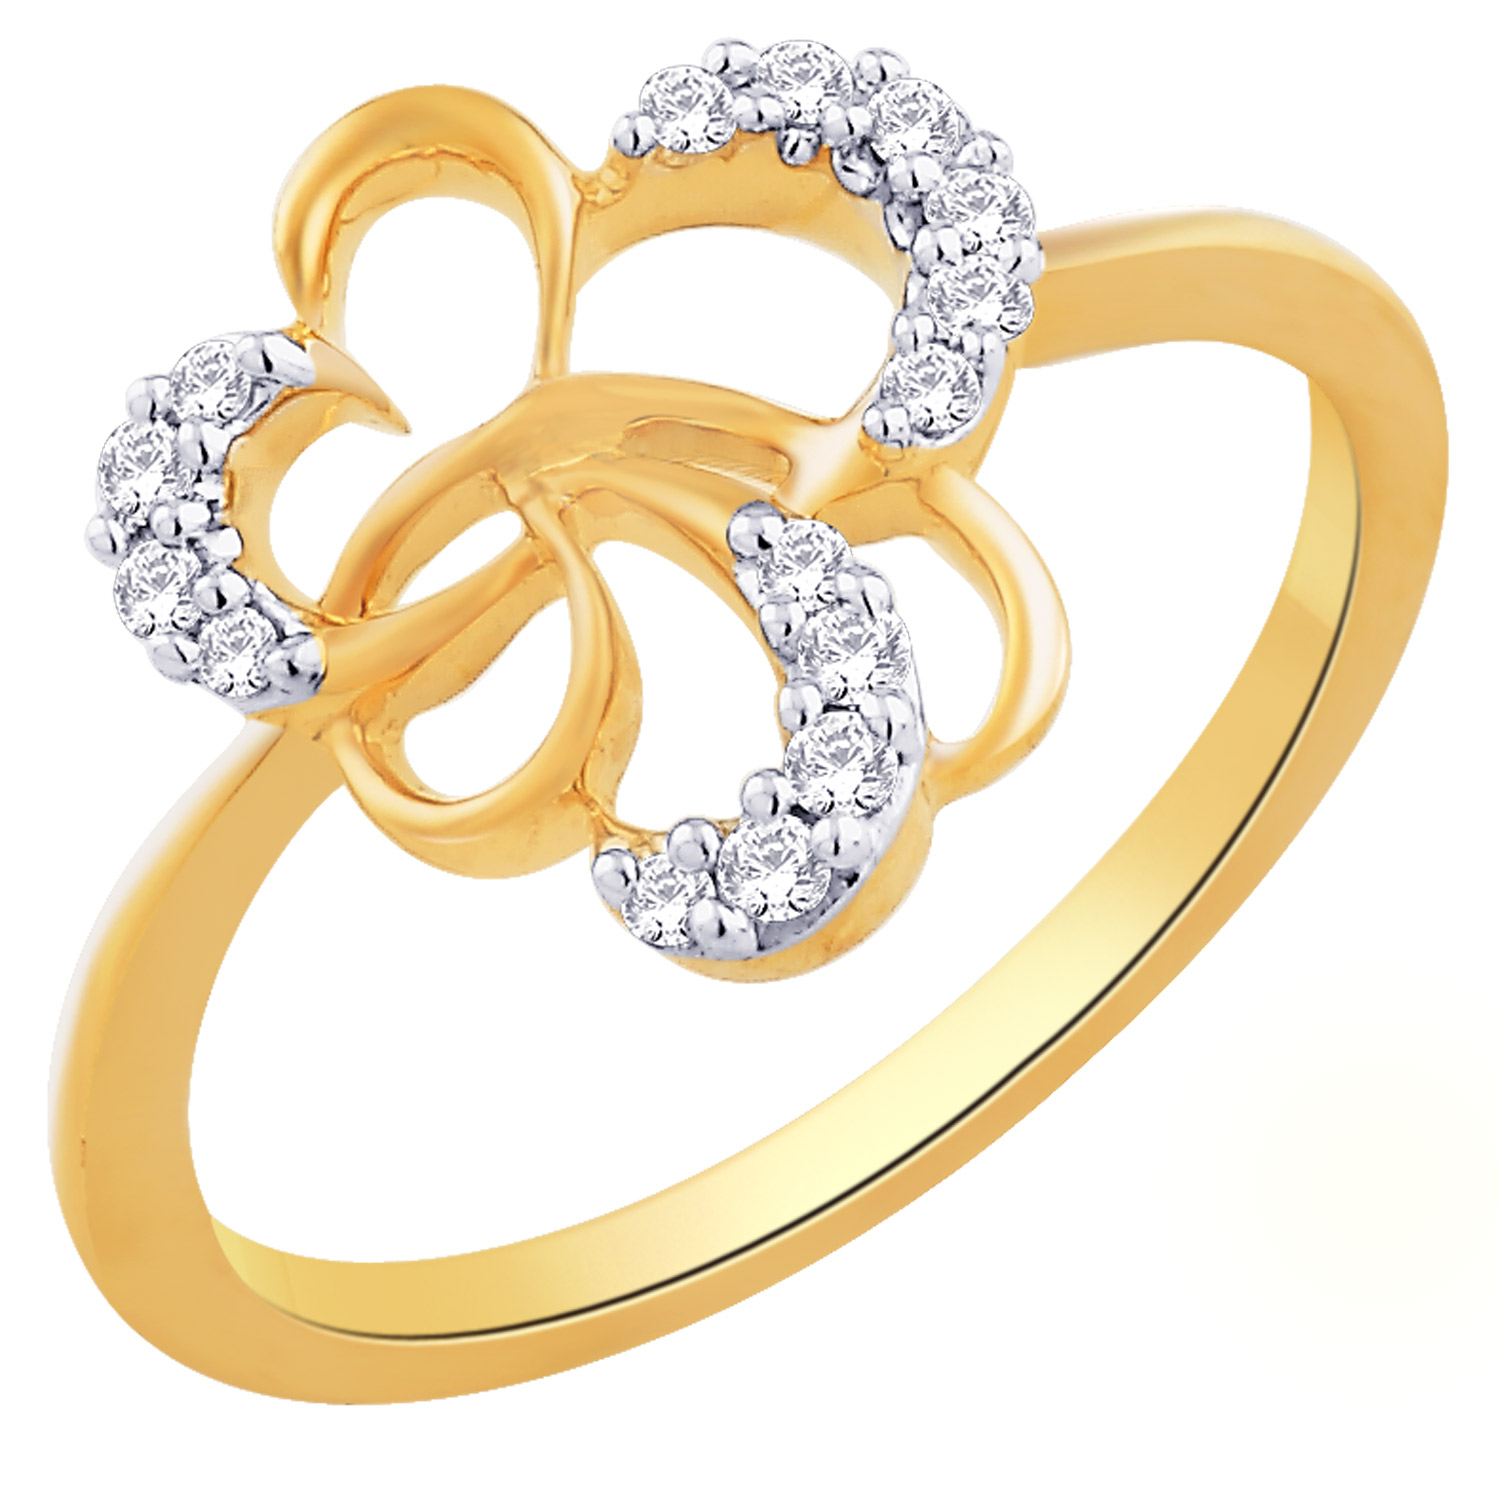 imgs earnings image png free images jewelry download jewellery ring rings gold